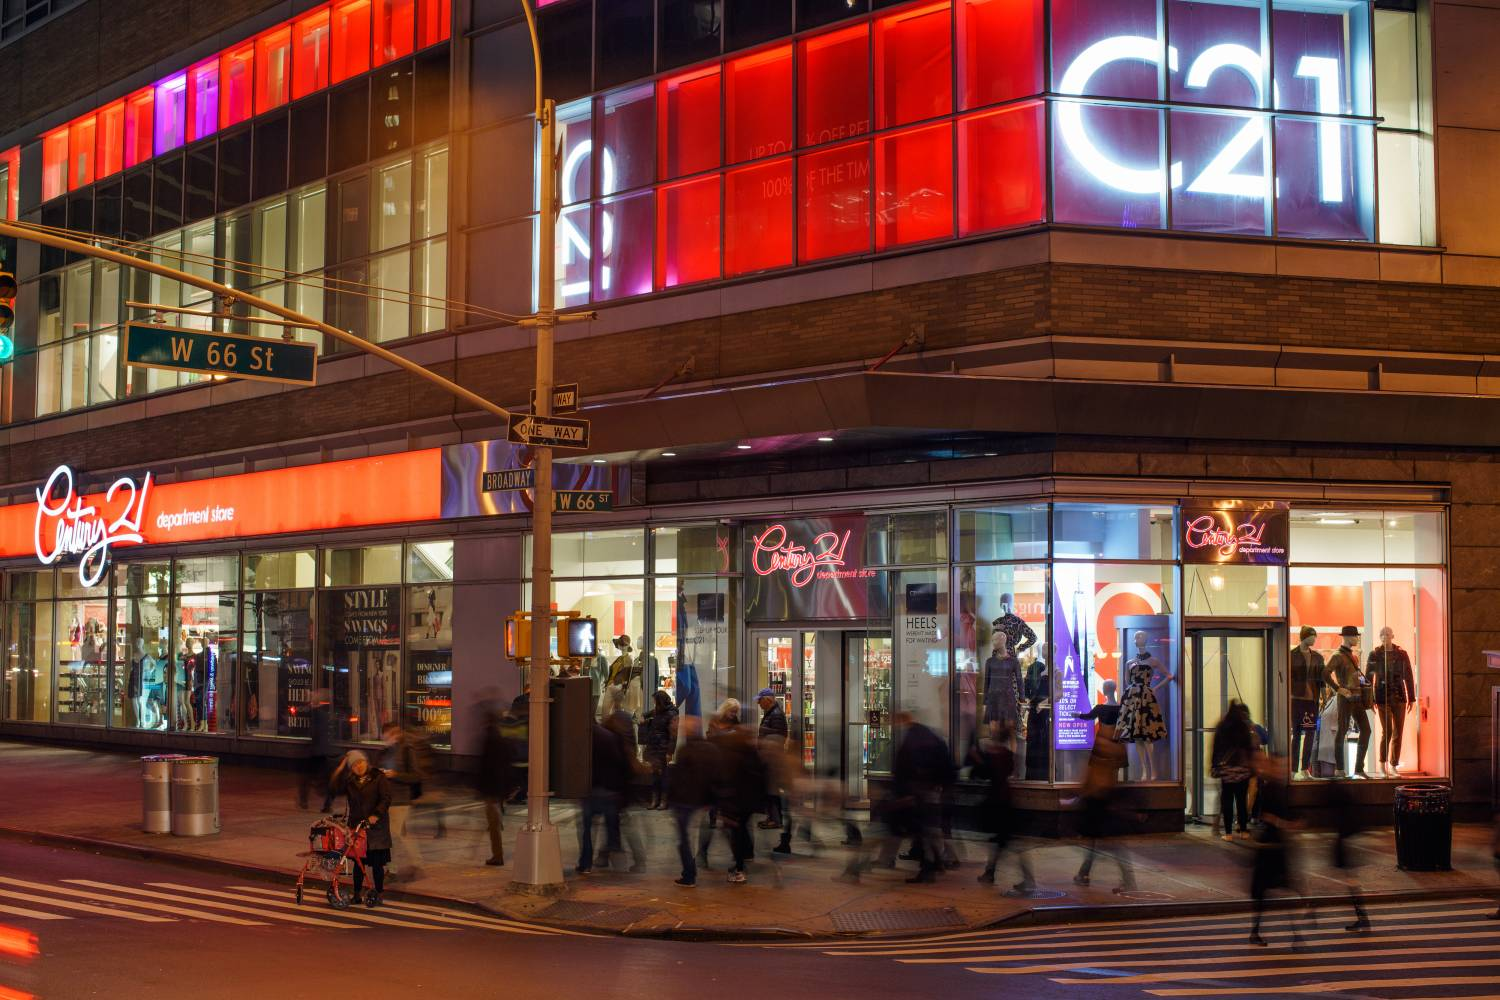 Exterior of Century 21 Upper West Side near Lincoln Center at night